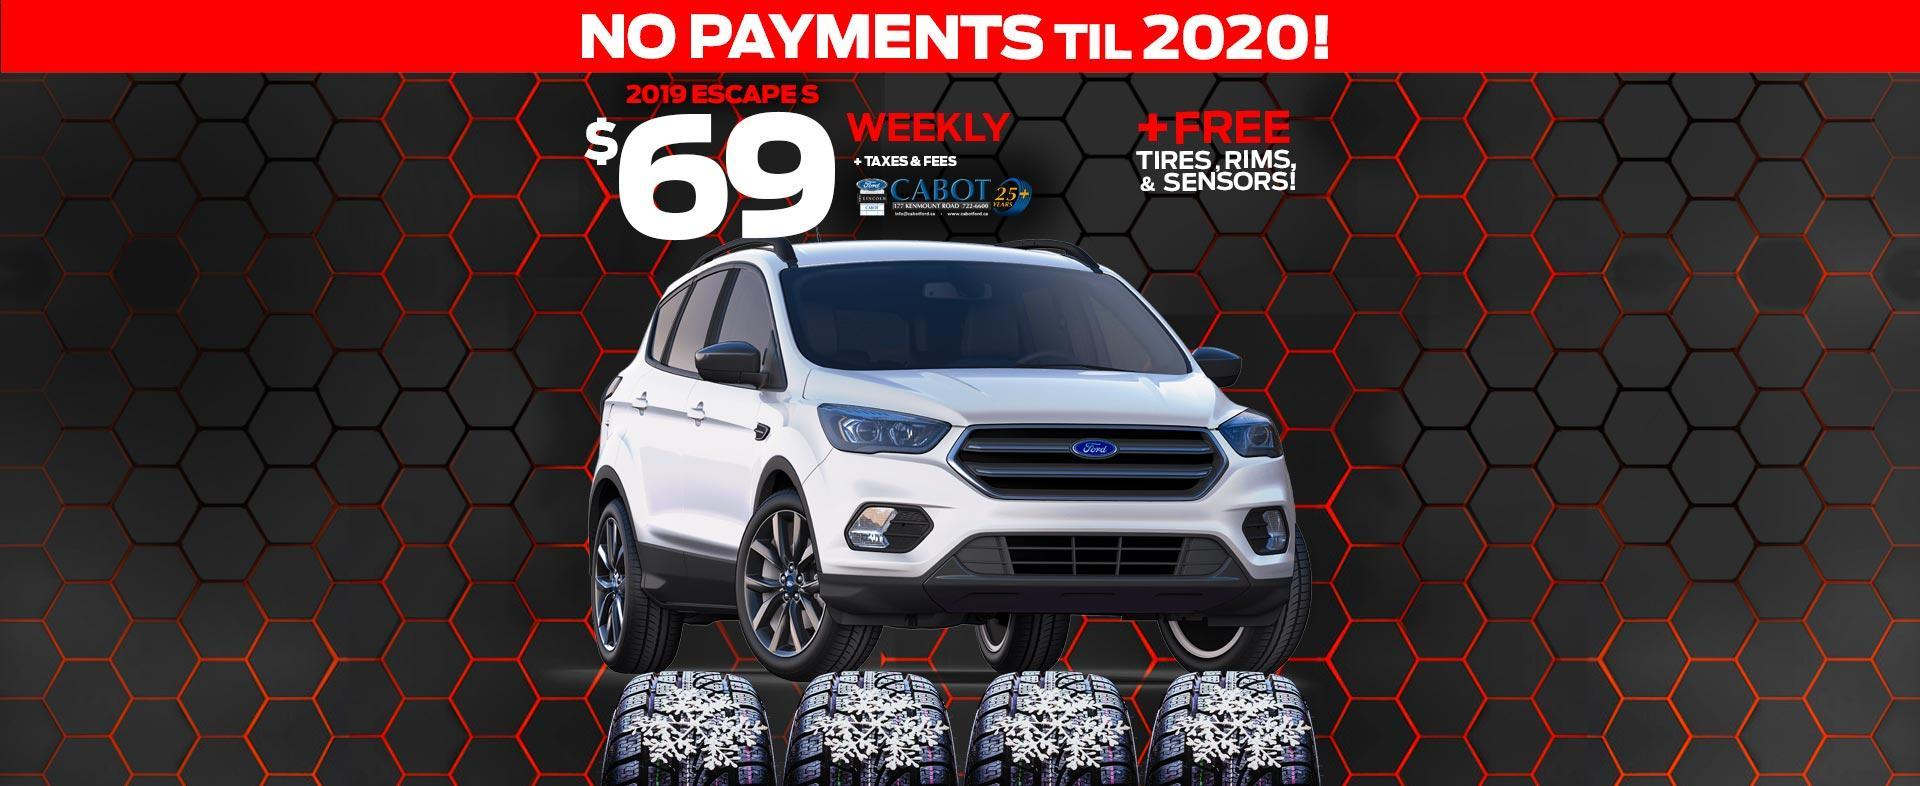 JUST $69 WEEKLY plus tax and fees for the 2019 Escape S, PLUS winter tires, rims, and sensors FREE!